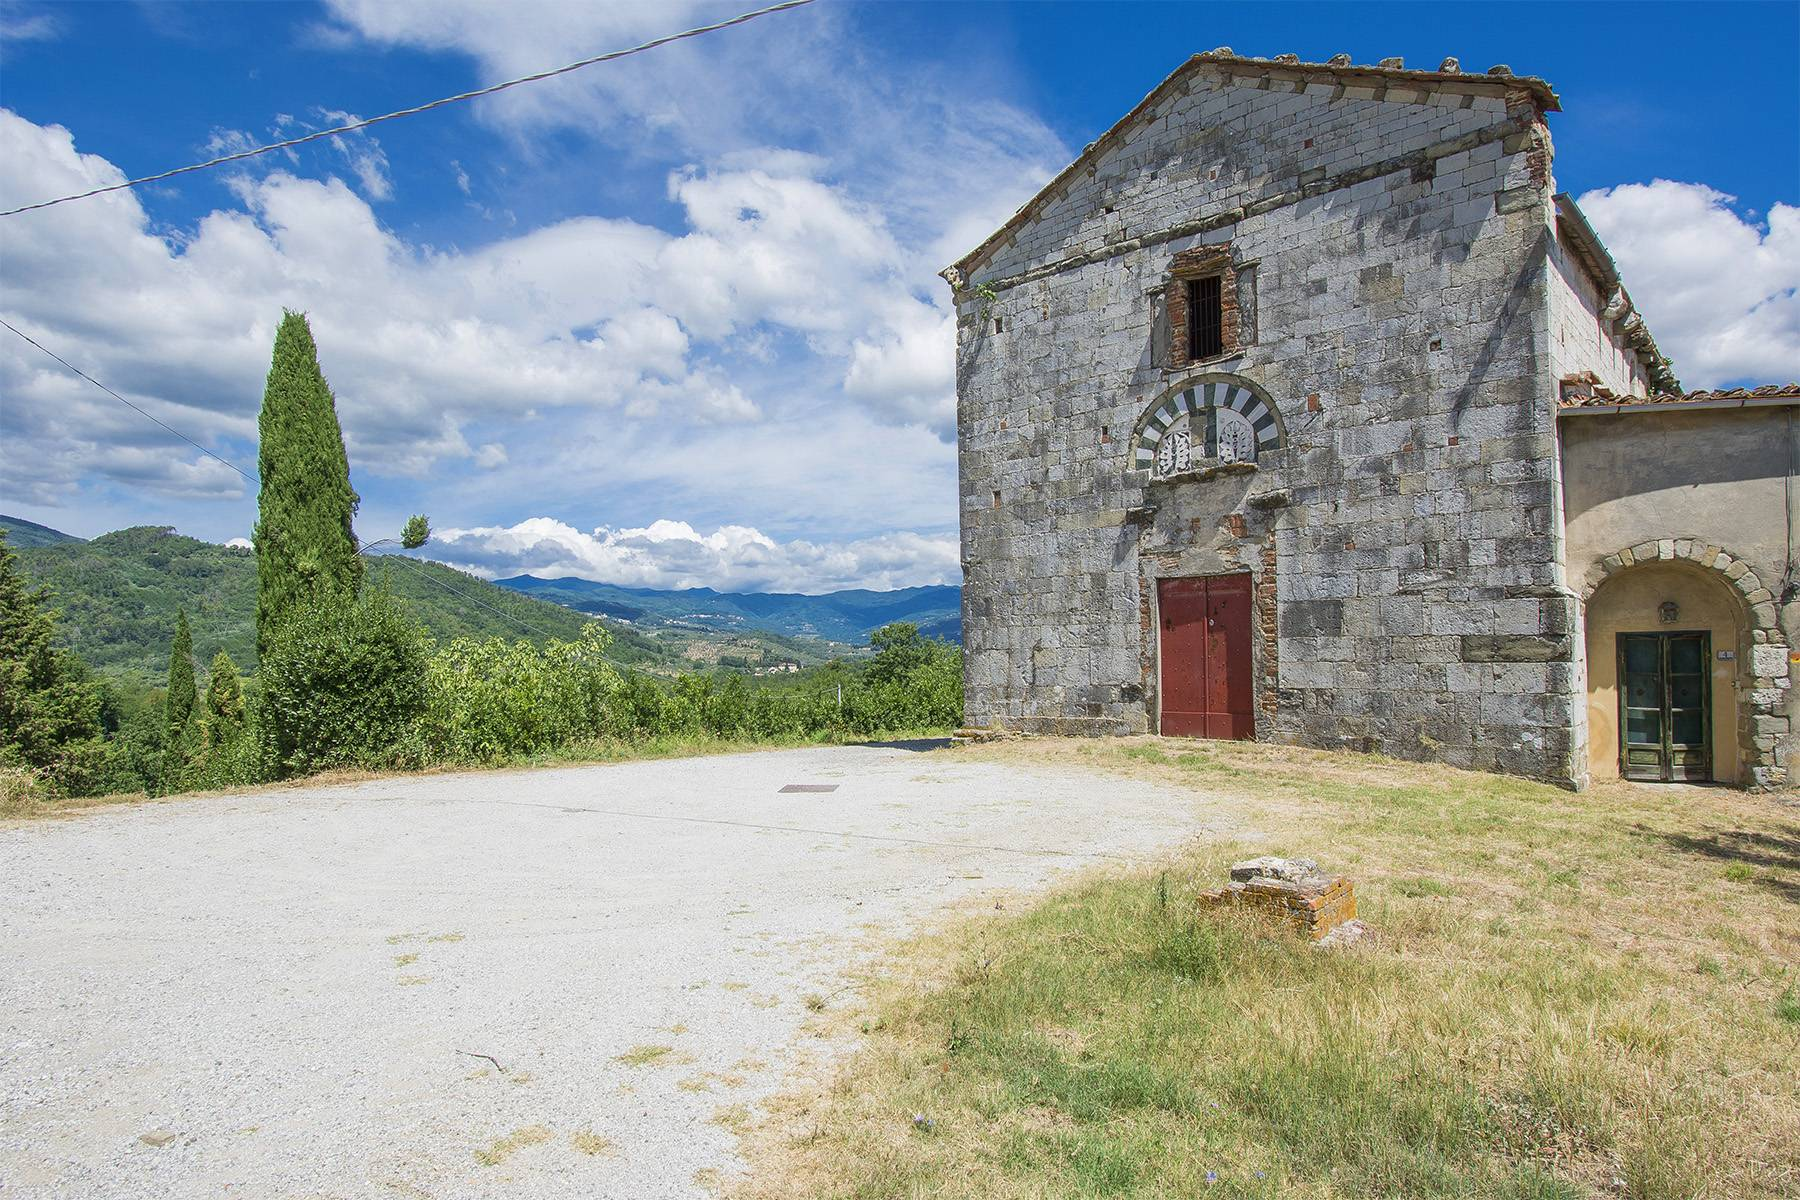 Charming farmhouse with a Xth century parish church in the Pistoia countryside - 2